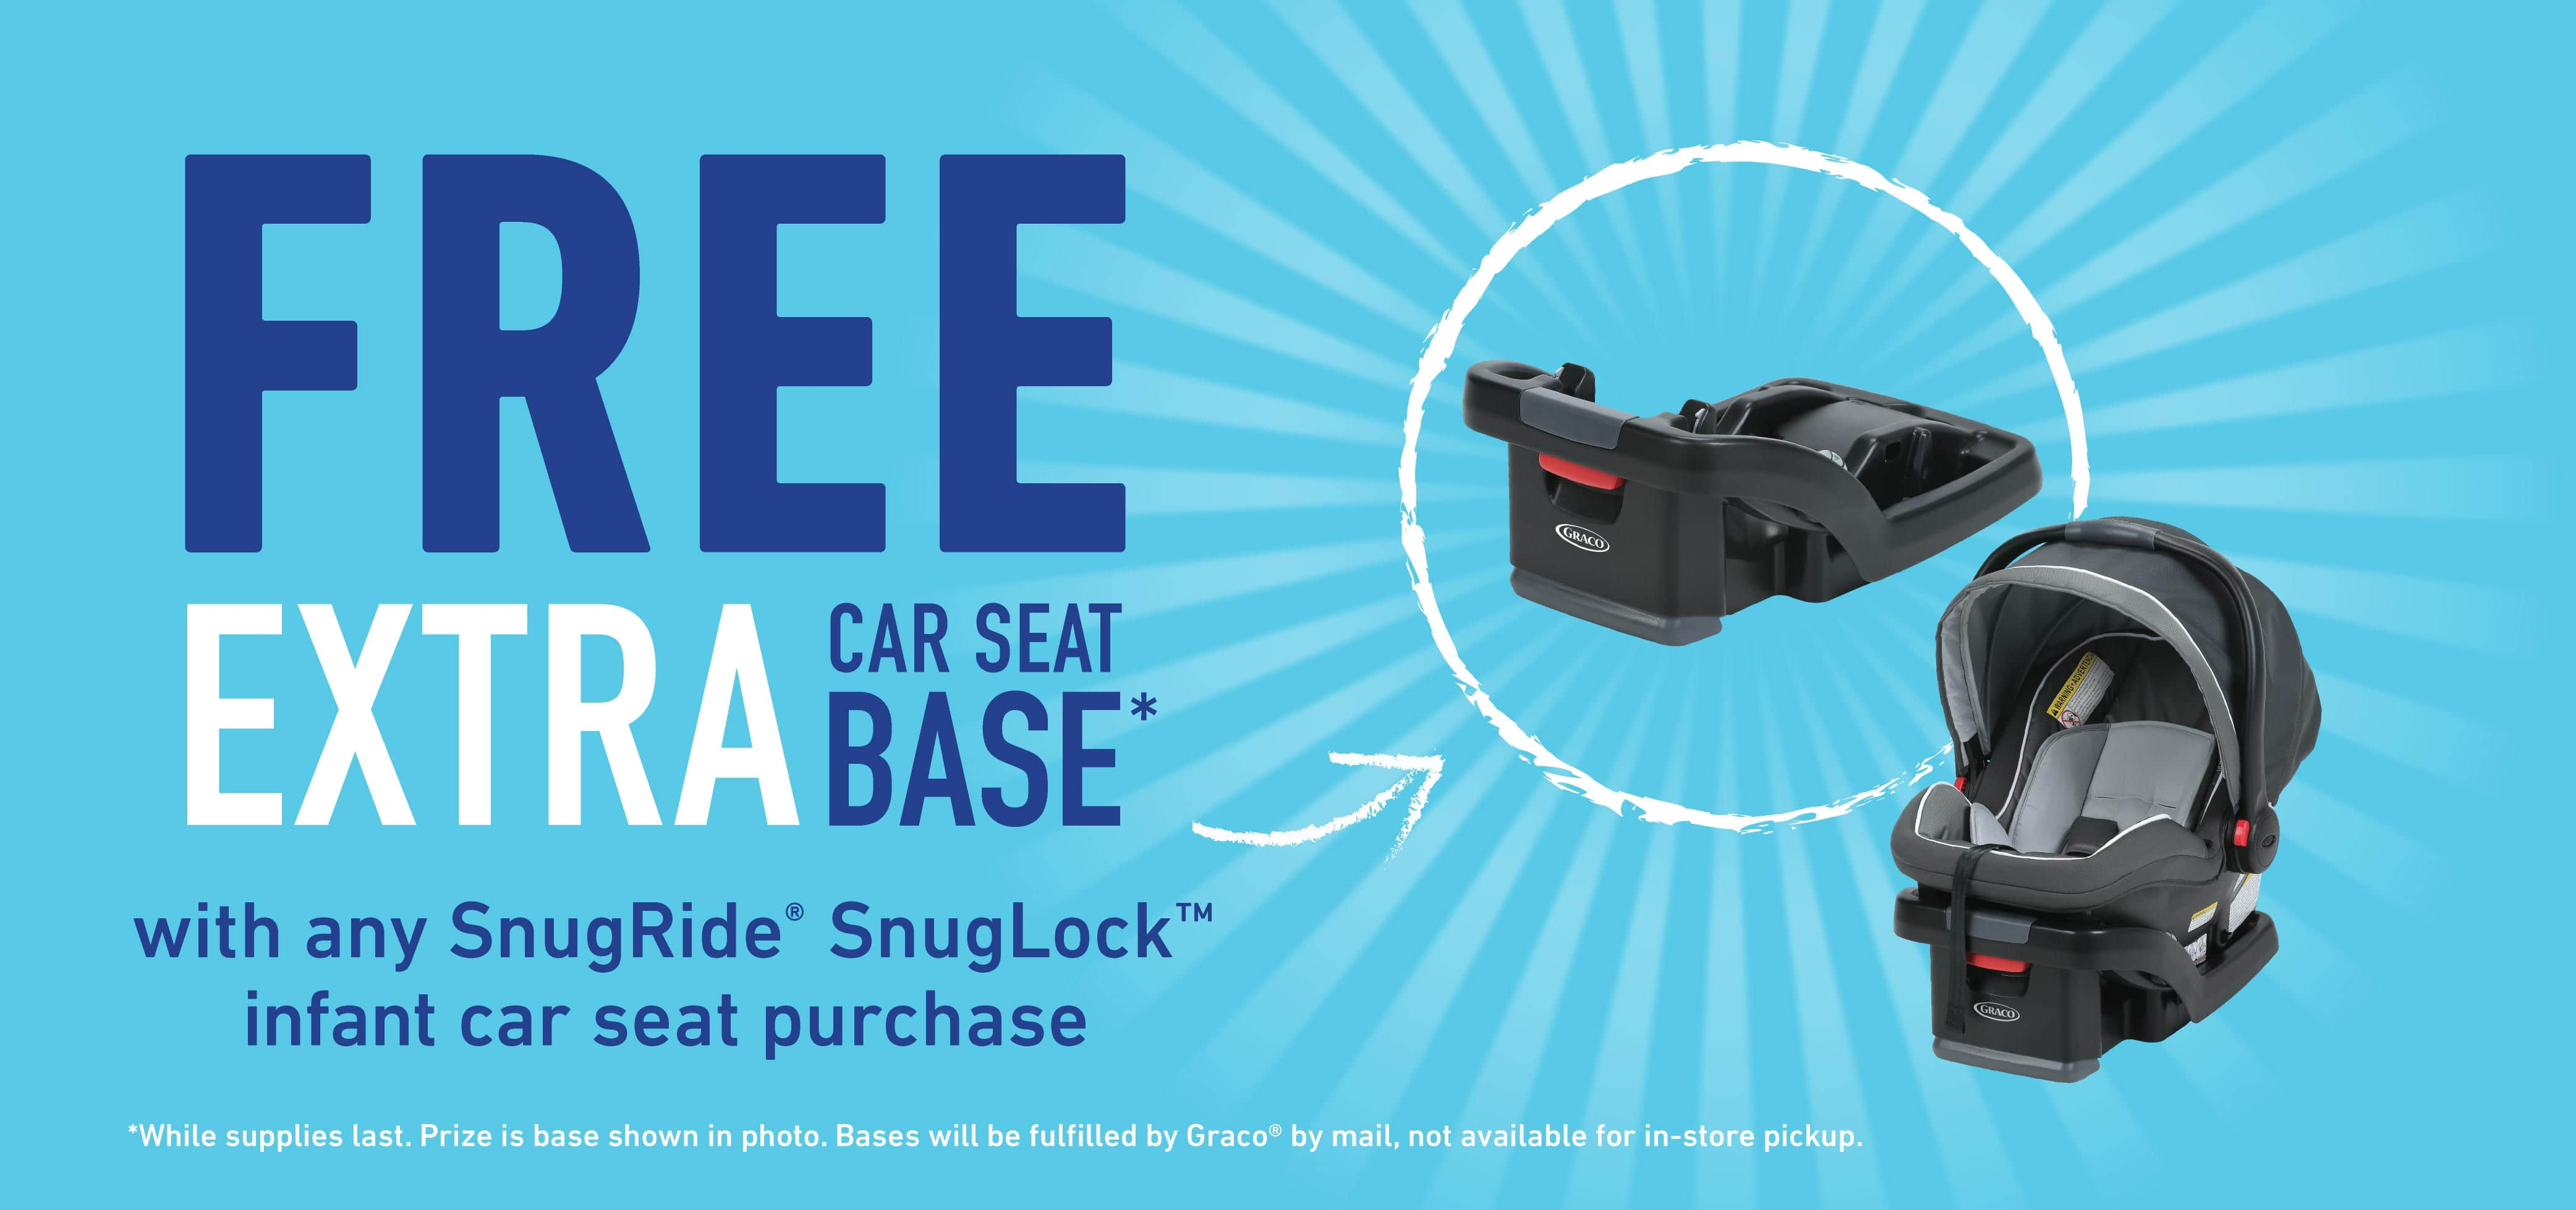 Graco Free Extra Car Seat Base With A Qualifying Purchase